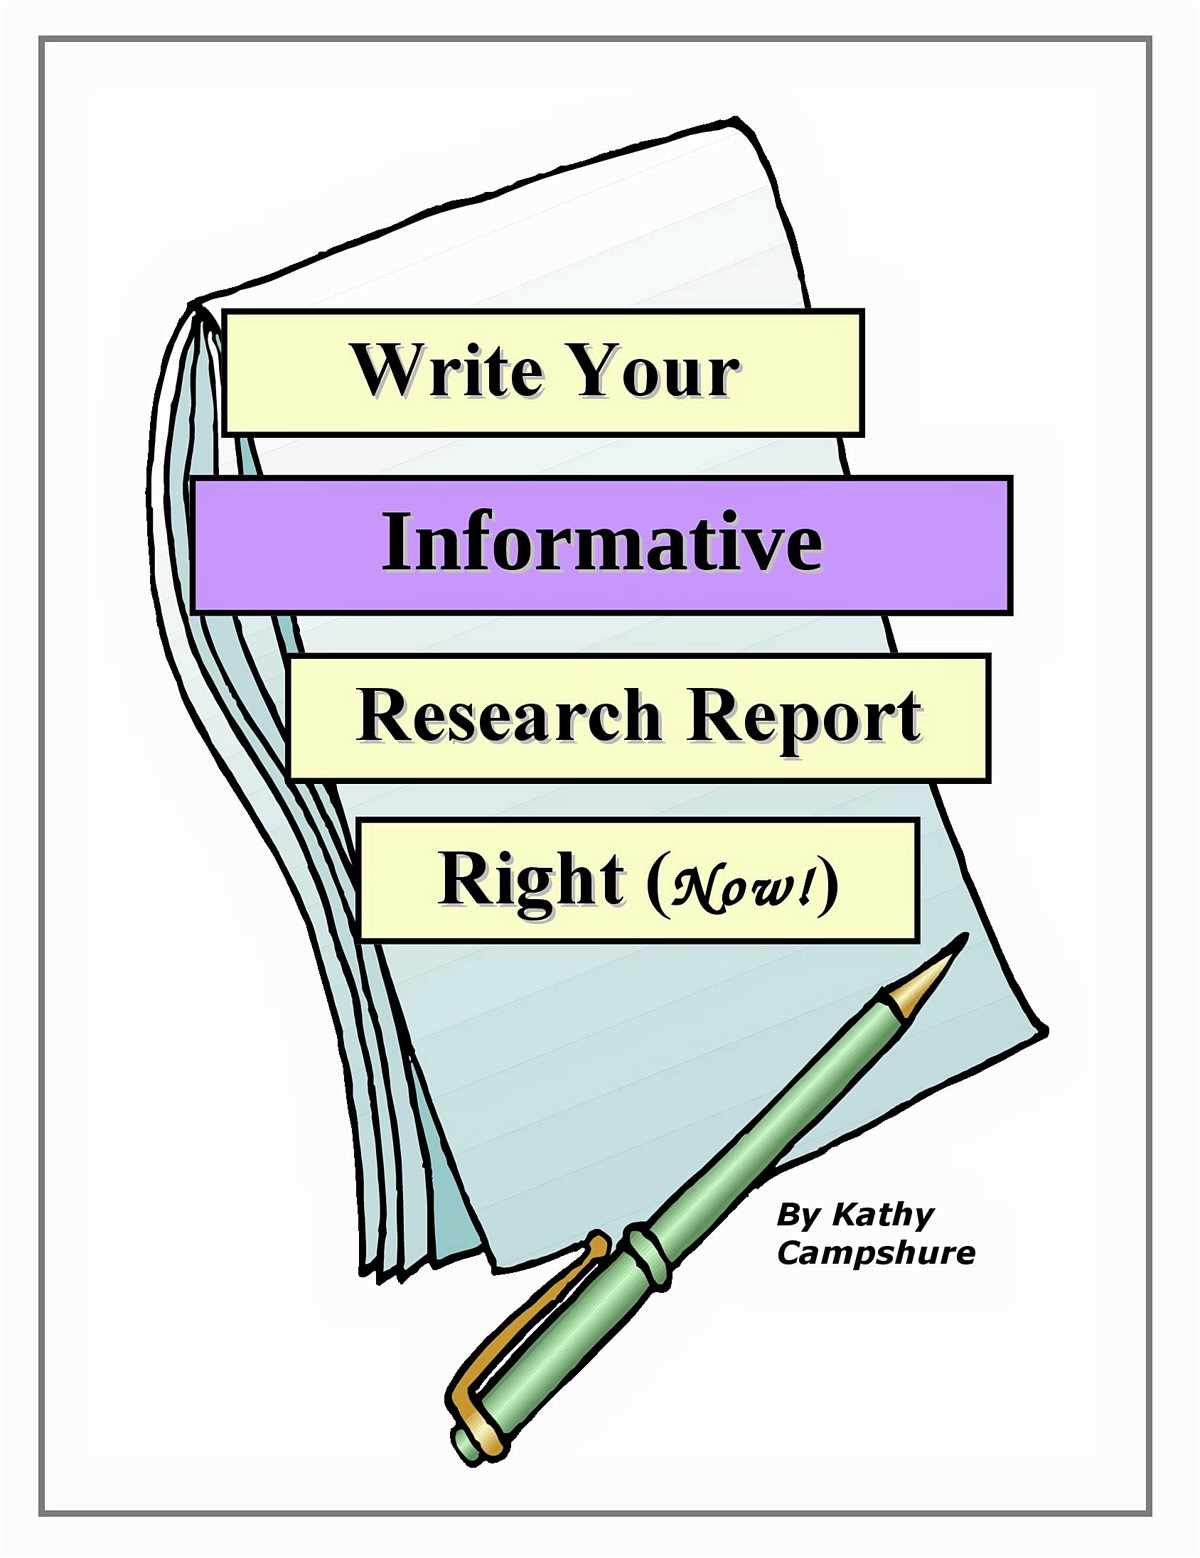 Write Your Informative Research Report Right (Now!